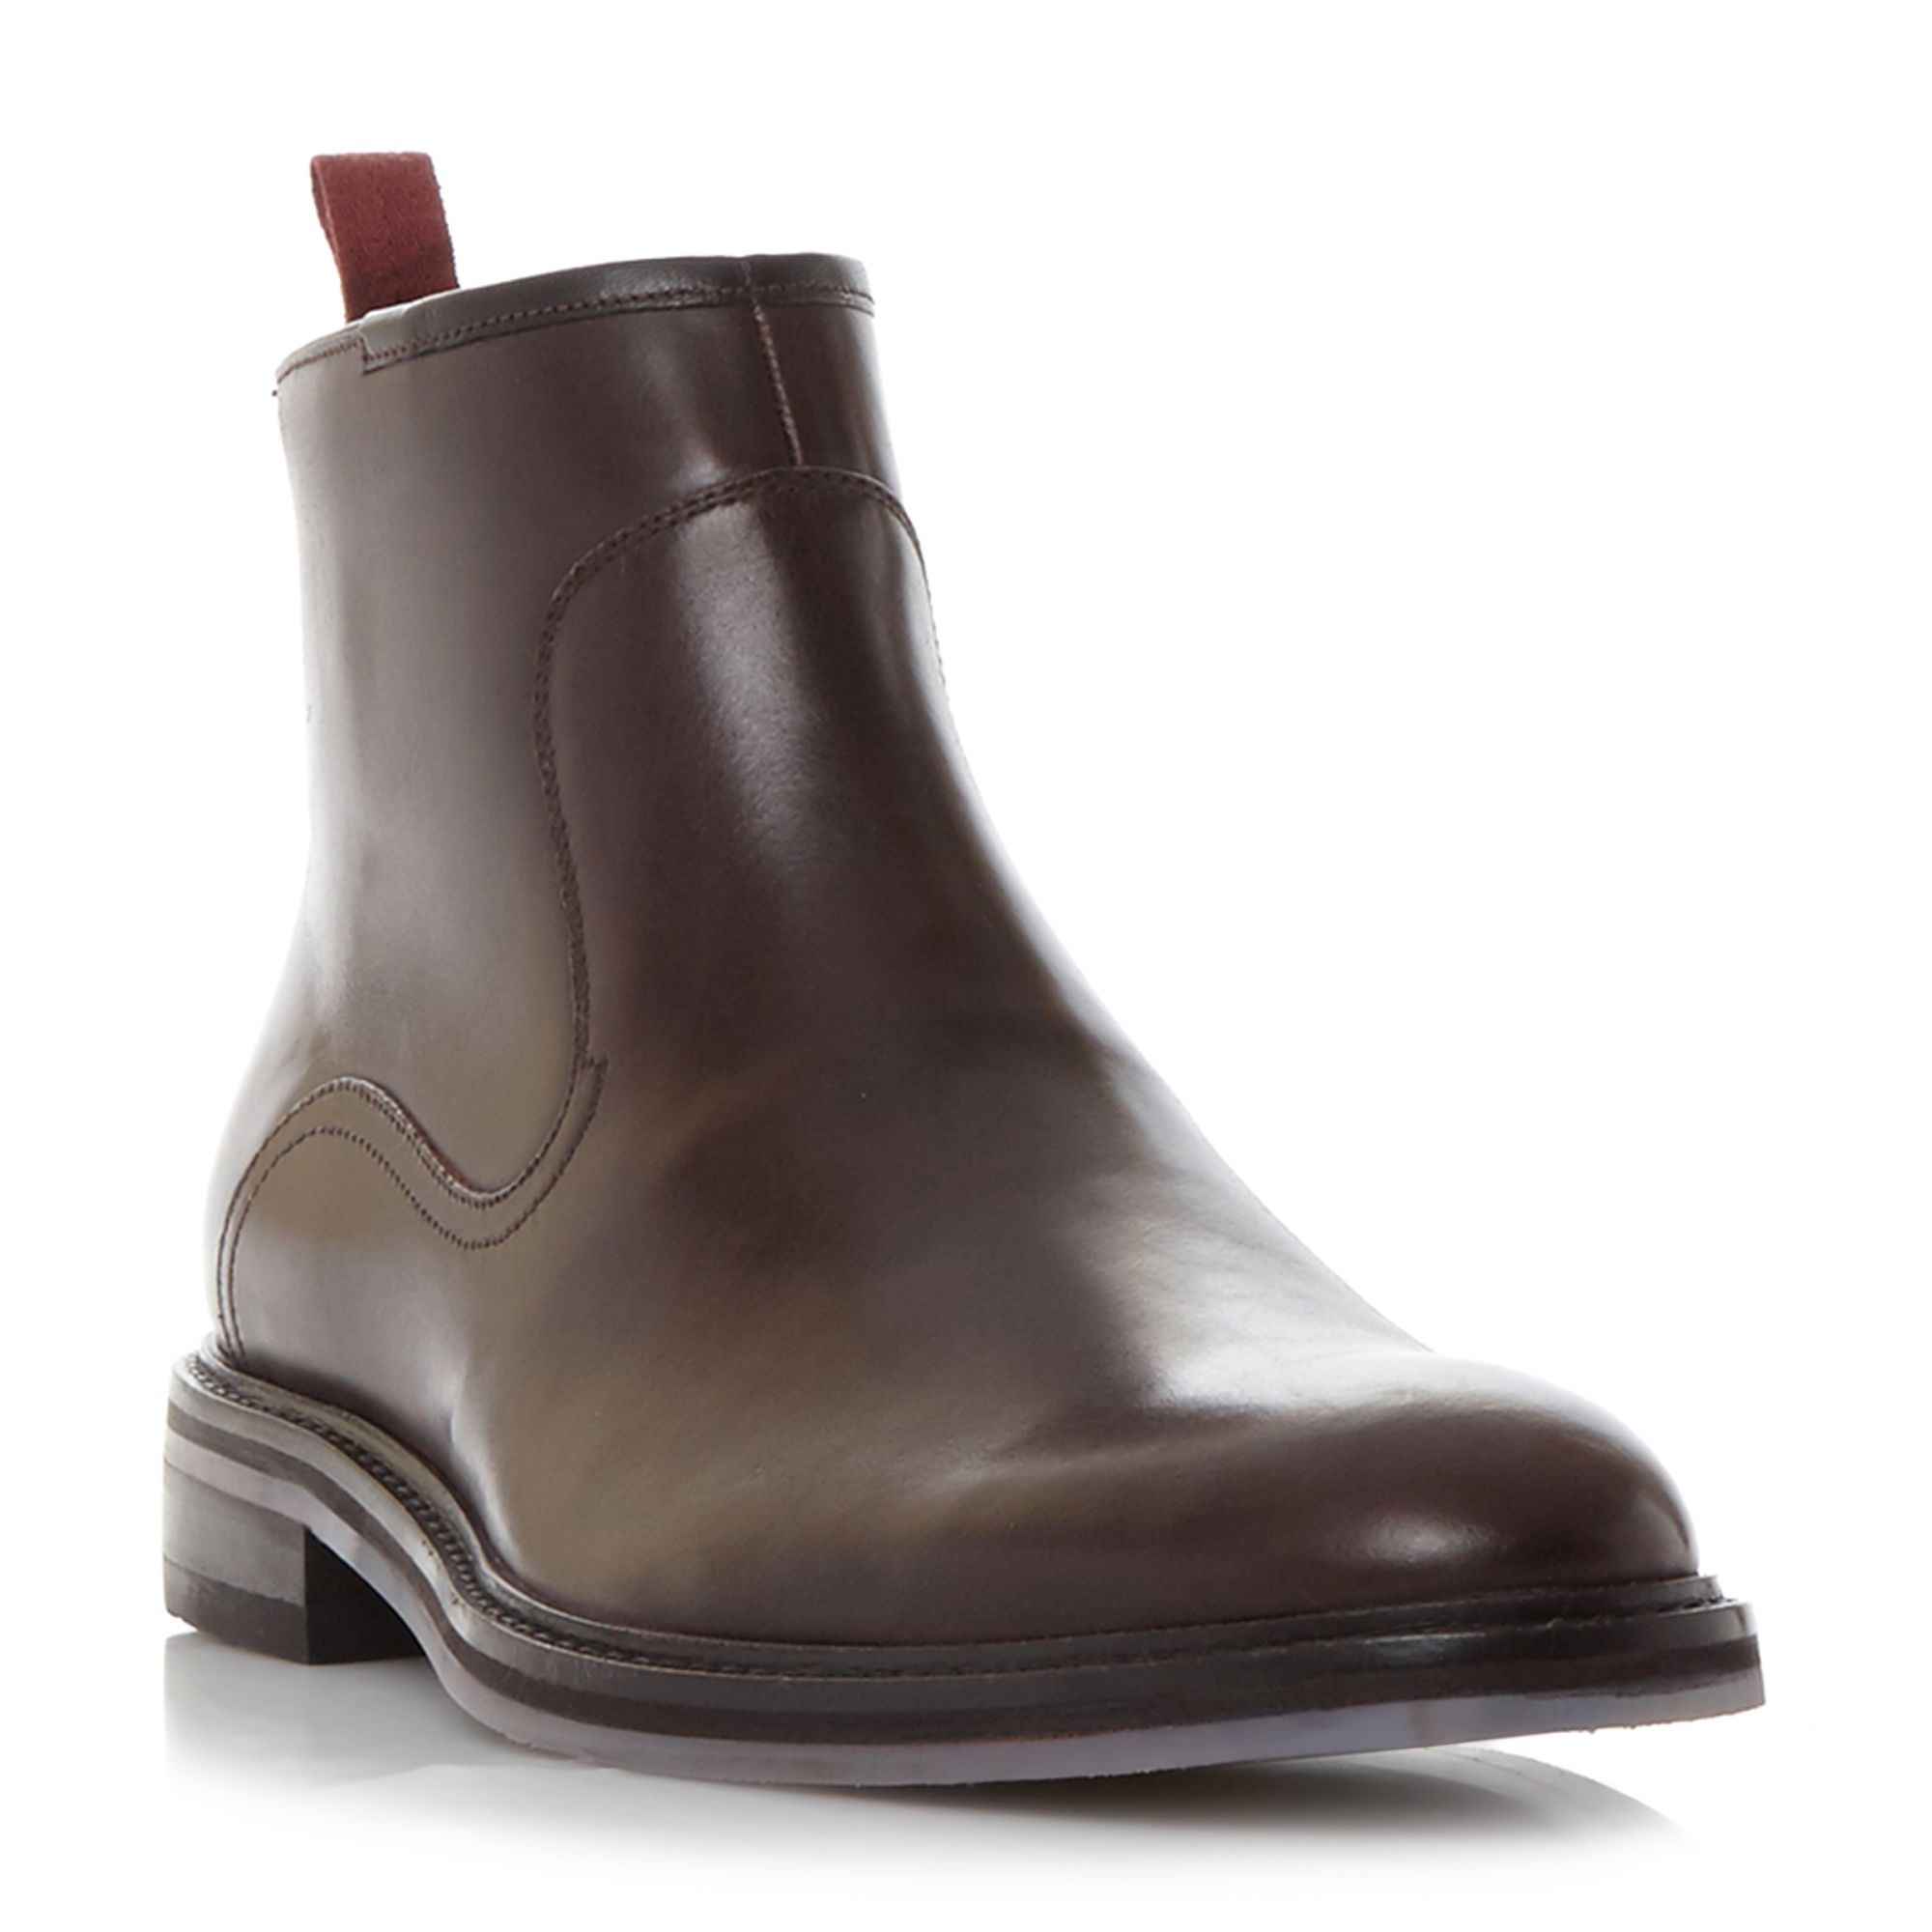 Ted Baker Rousse ankle boots Brown